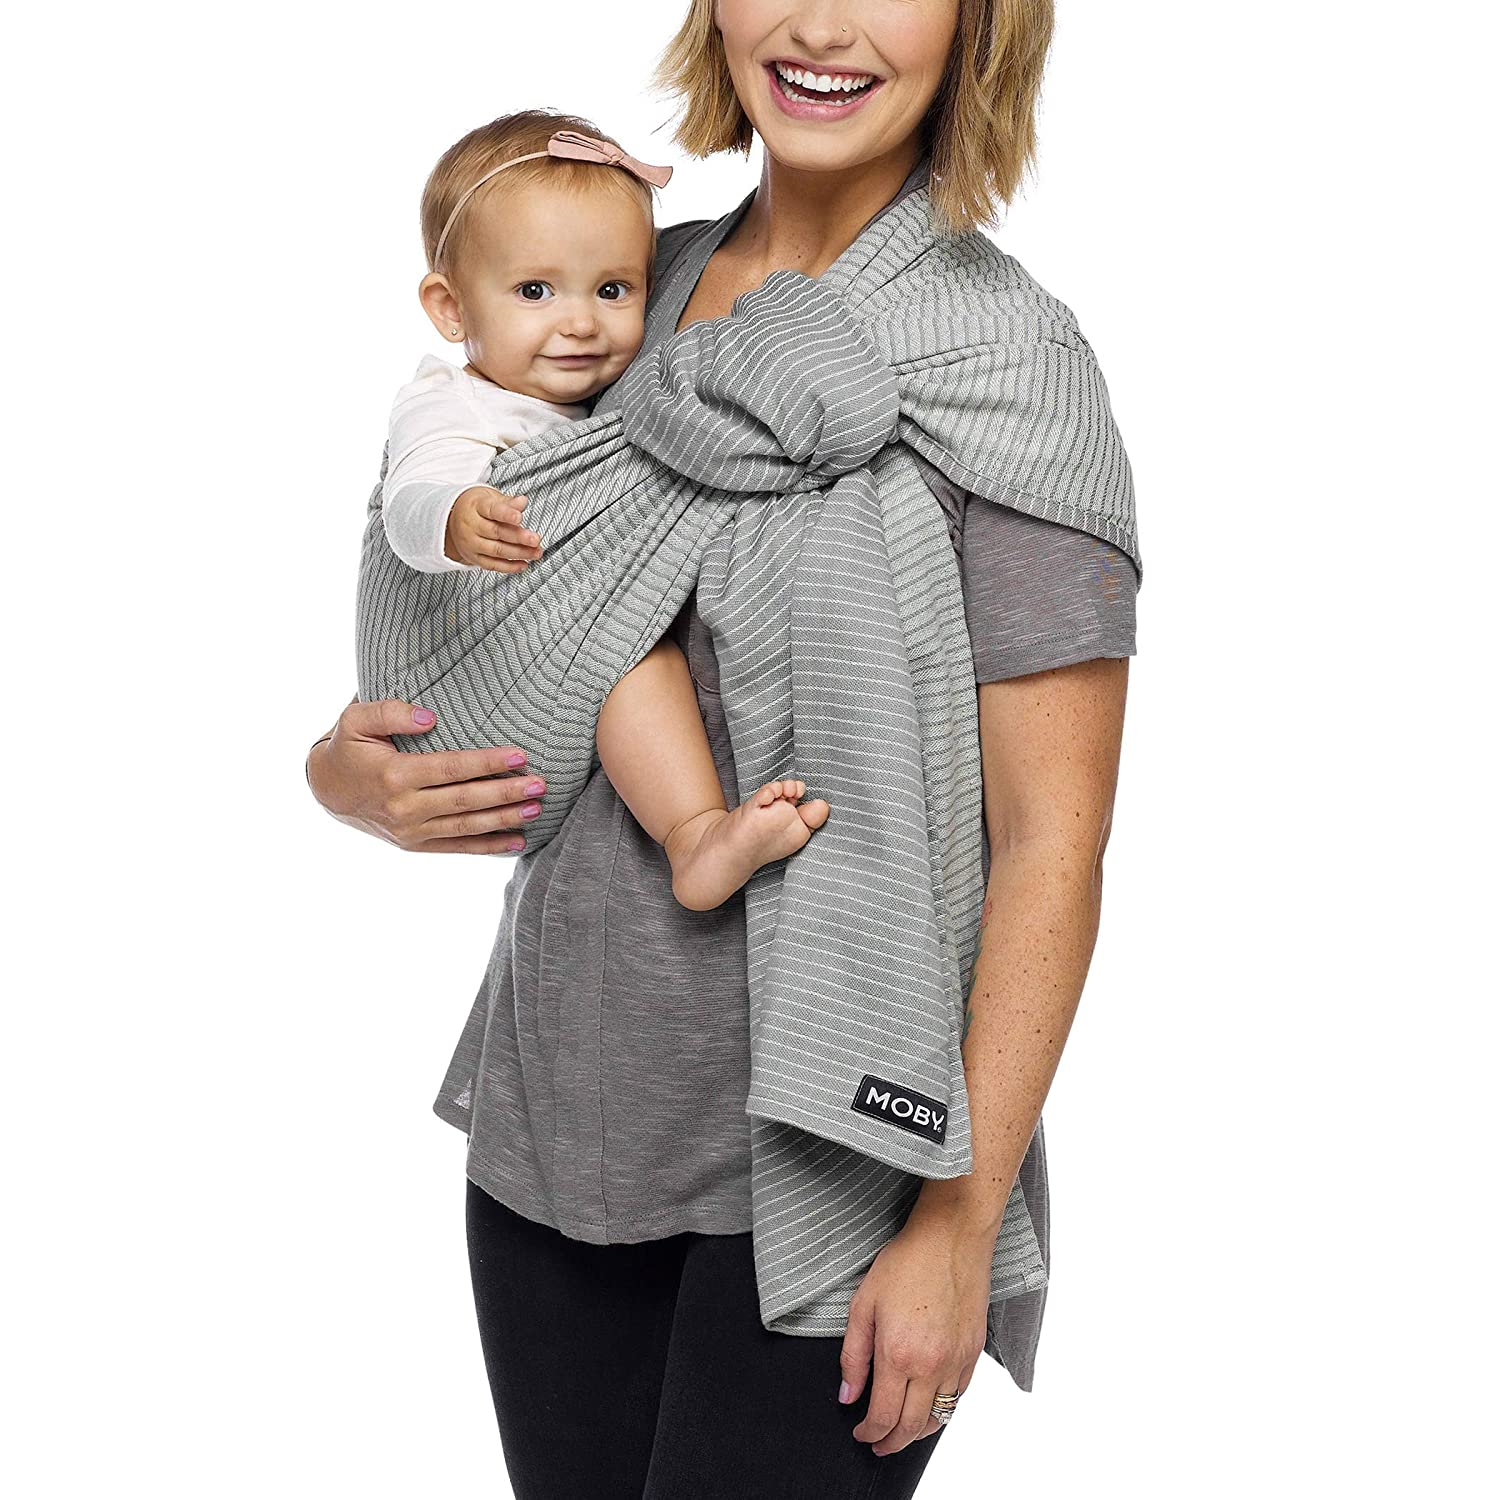 Moby Ring Sling Baby Carrier Breastfeeding And Keeping Baby Close Baby Carrier For Newborns and Toddlers Infants - Ring Sling Carrier For Babywearing -Baby Sling For Baby Wearing Silver Streak